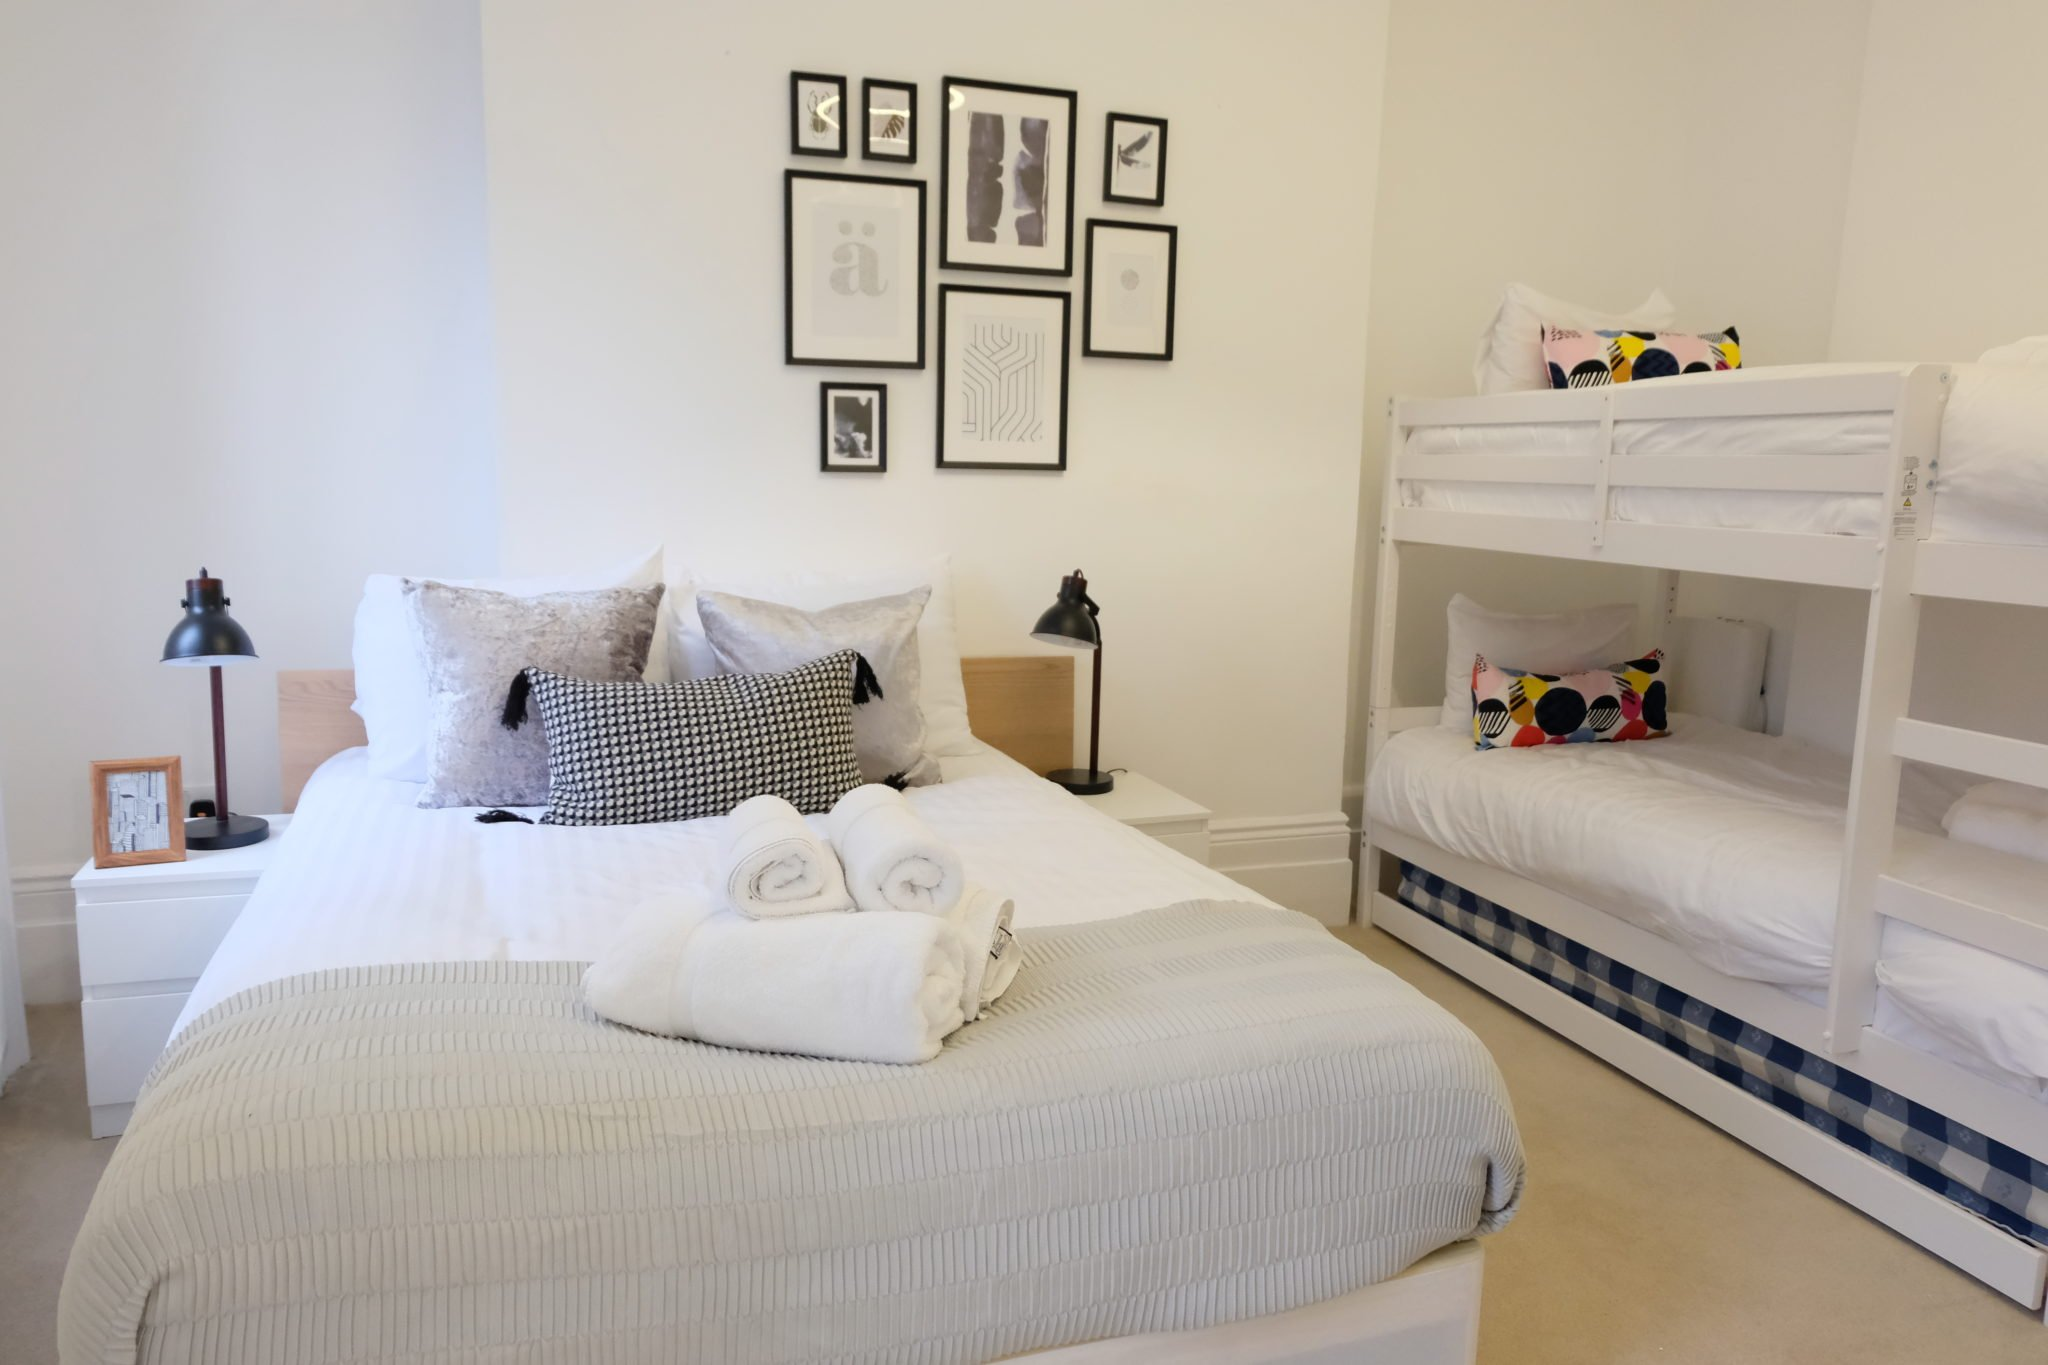 Luxury Townhousescentral London Oxford Street Mansions Short Let Serviced Accommodation Tottenham Court Road Urban Stay 17 (2)